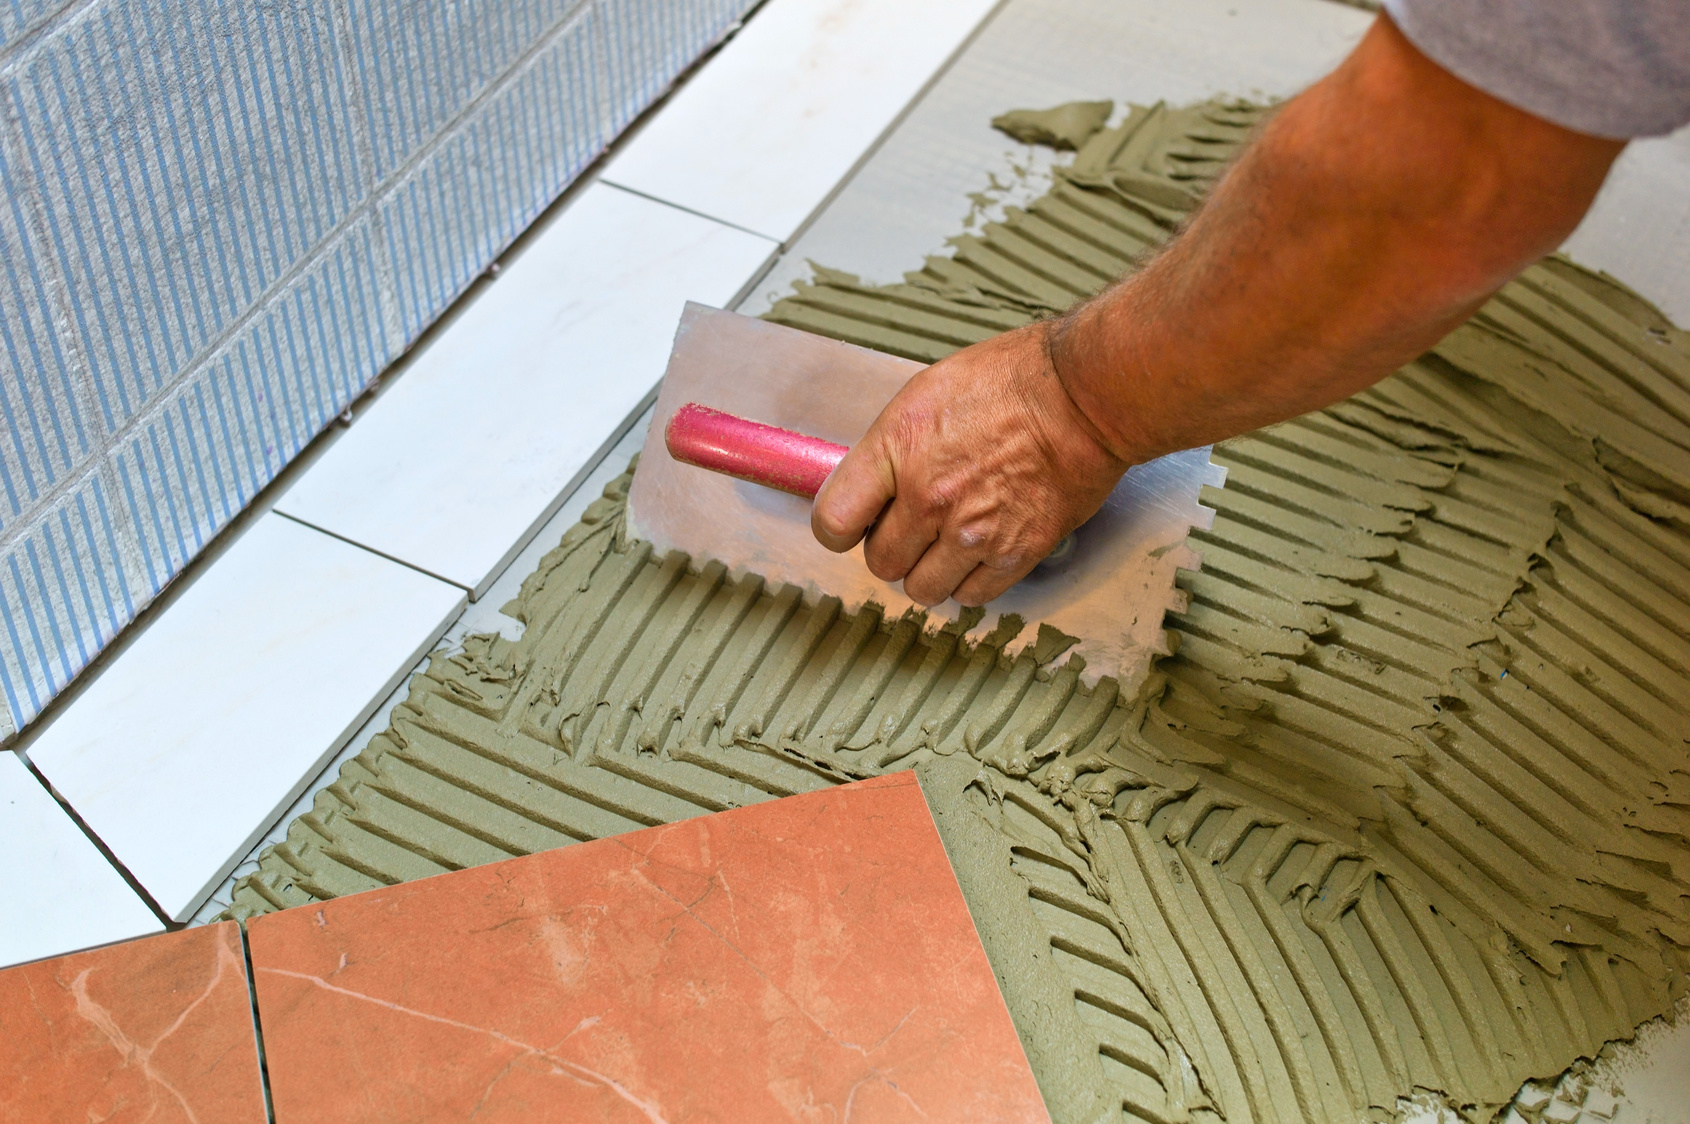 Poser du carrelage tuto for Poser du carrelage